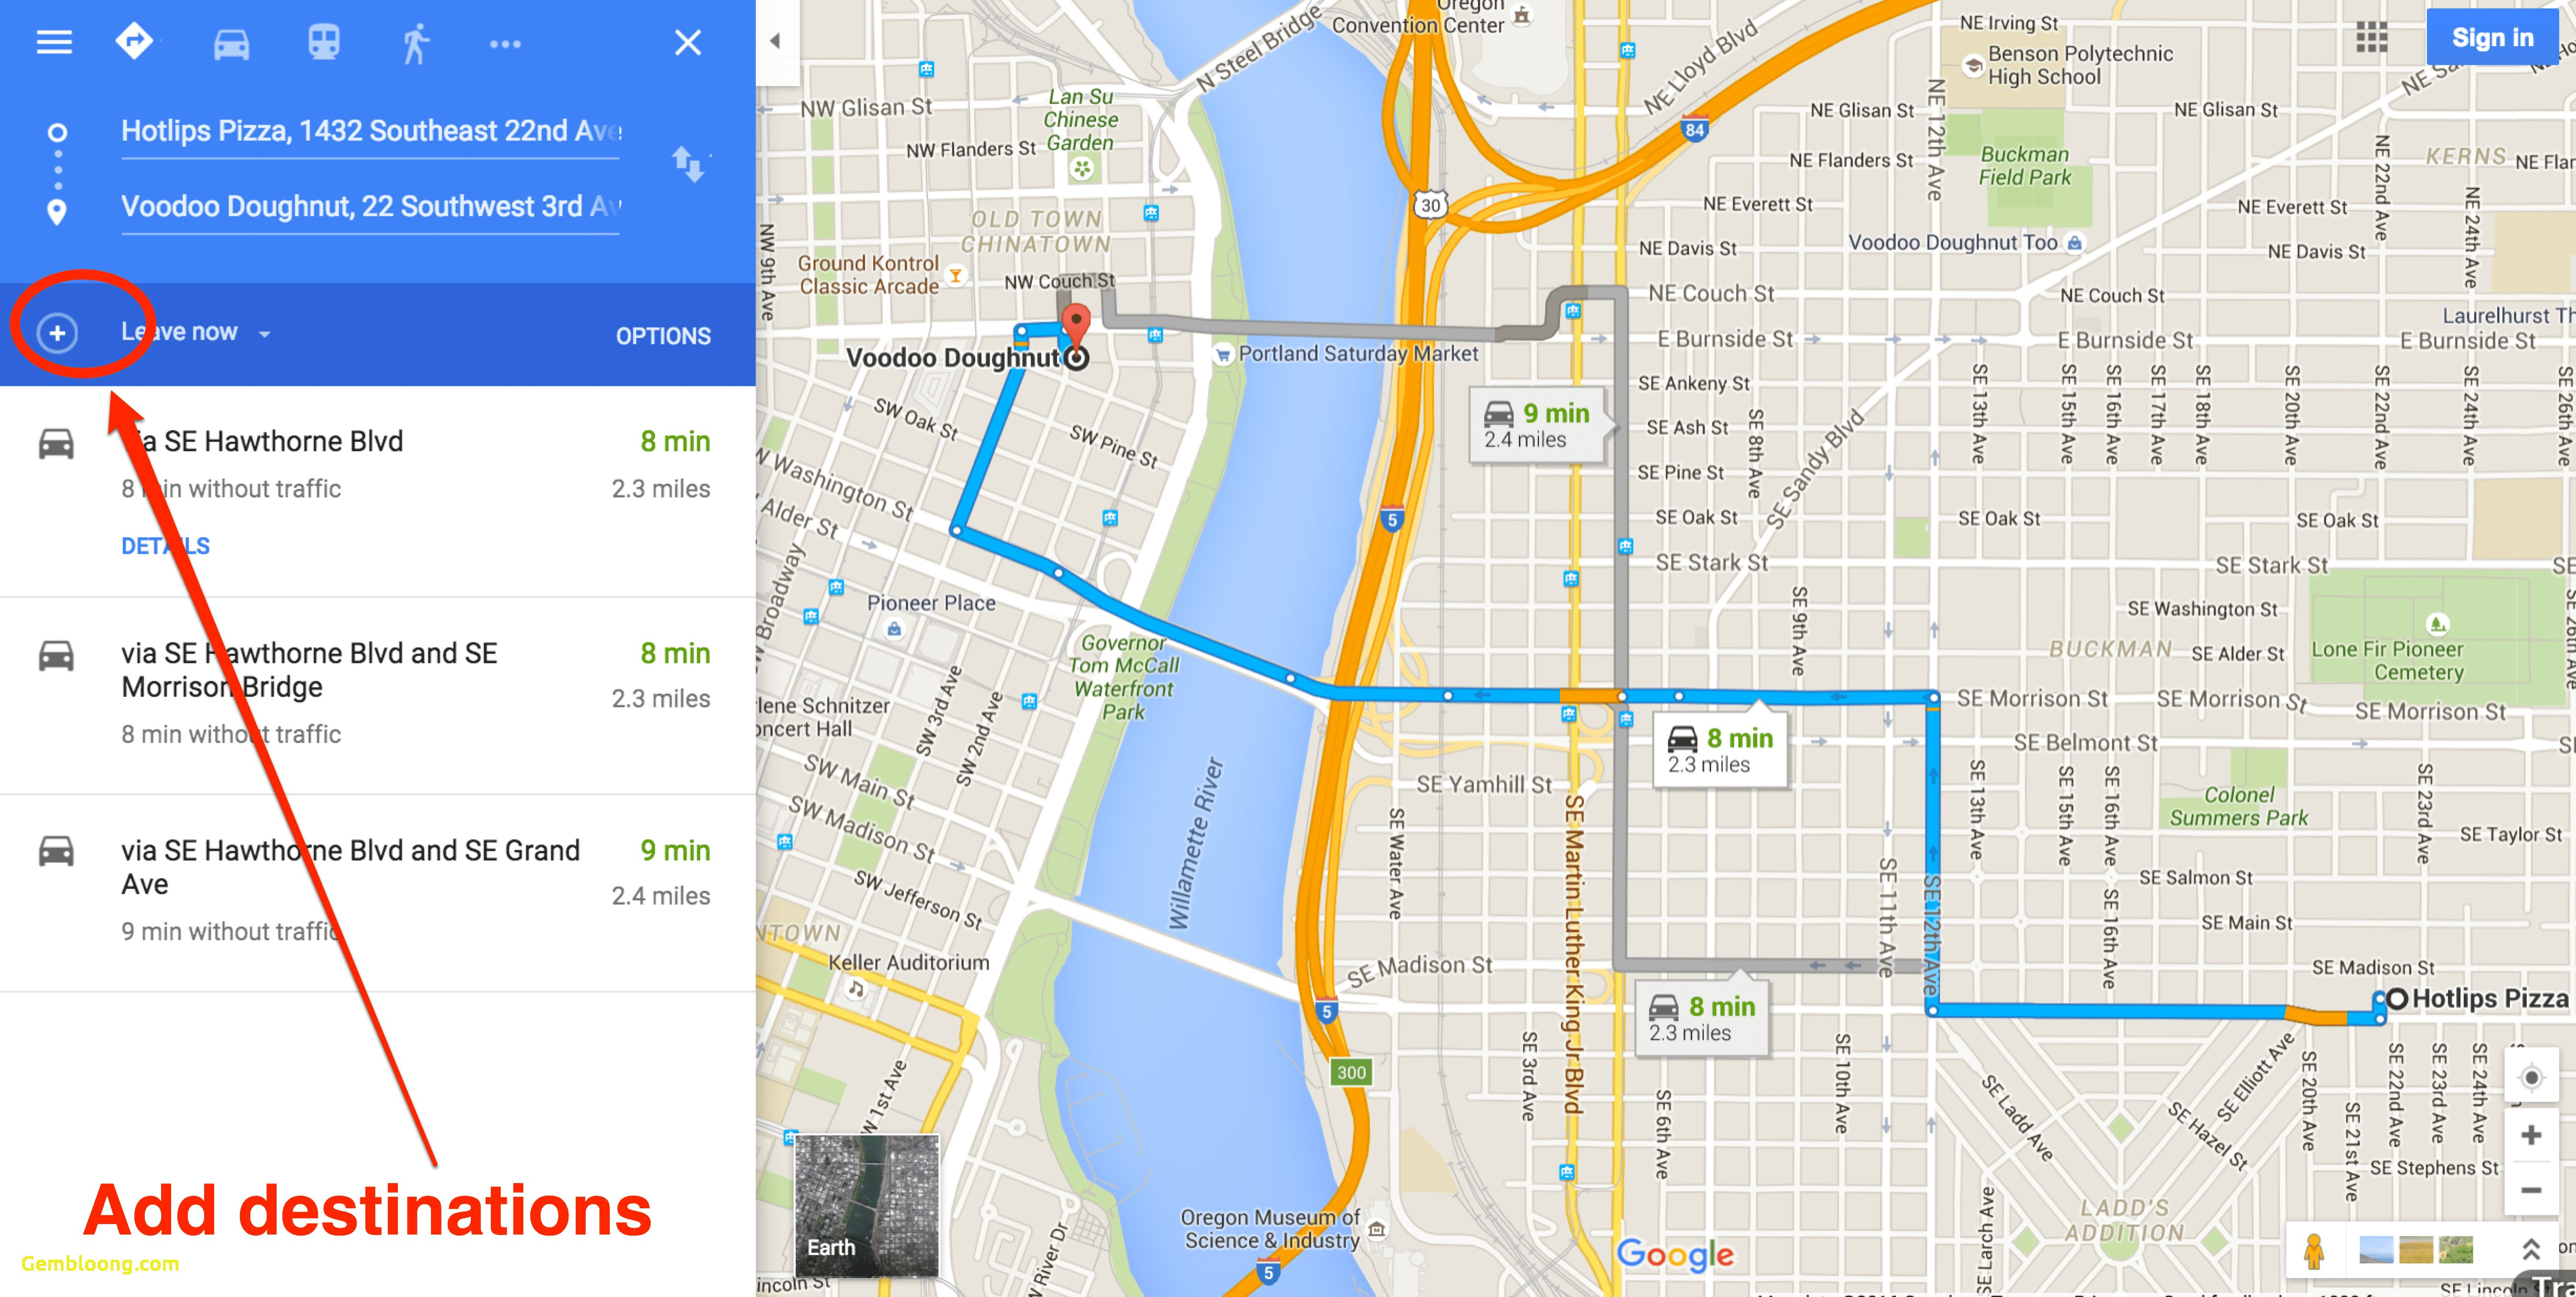 How To Get Driving Directions And More From Google Maps Image Of Map - California Traffic Conditions Map